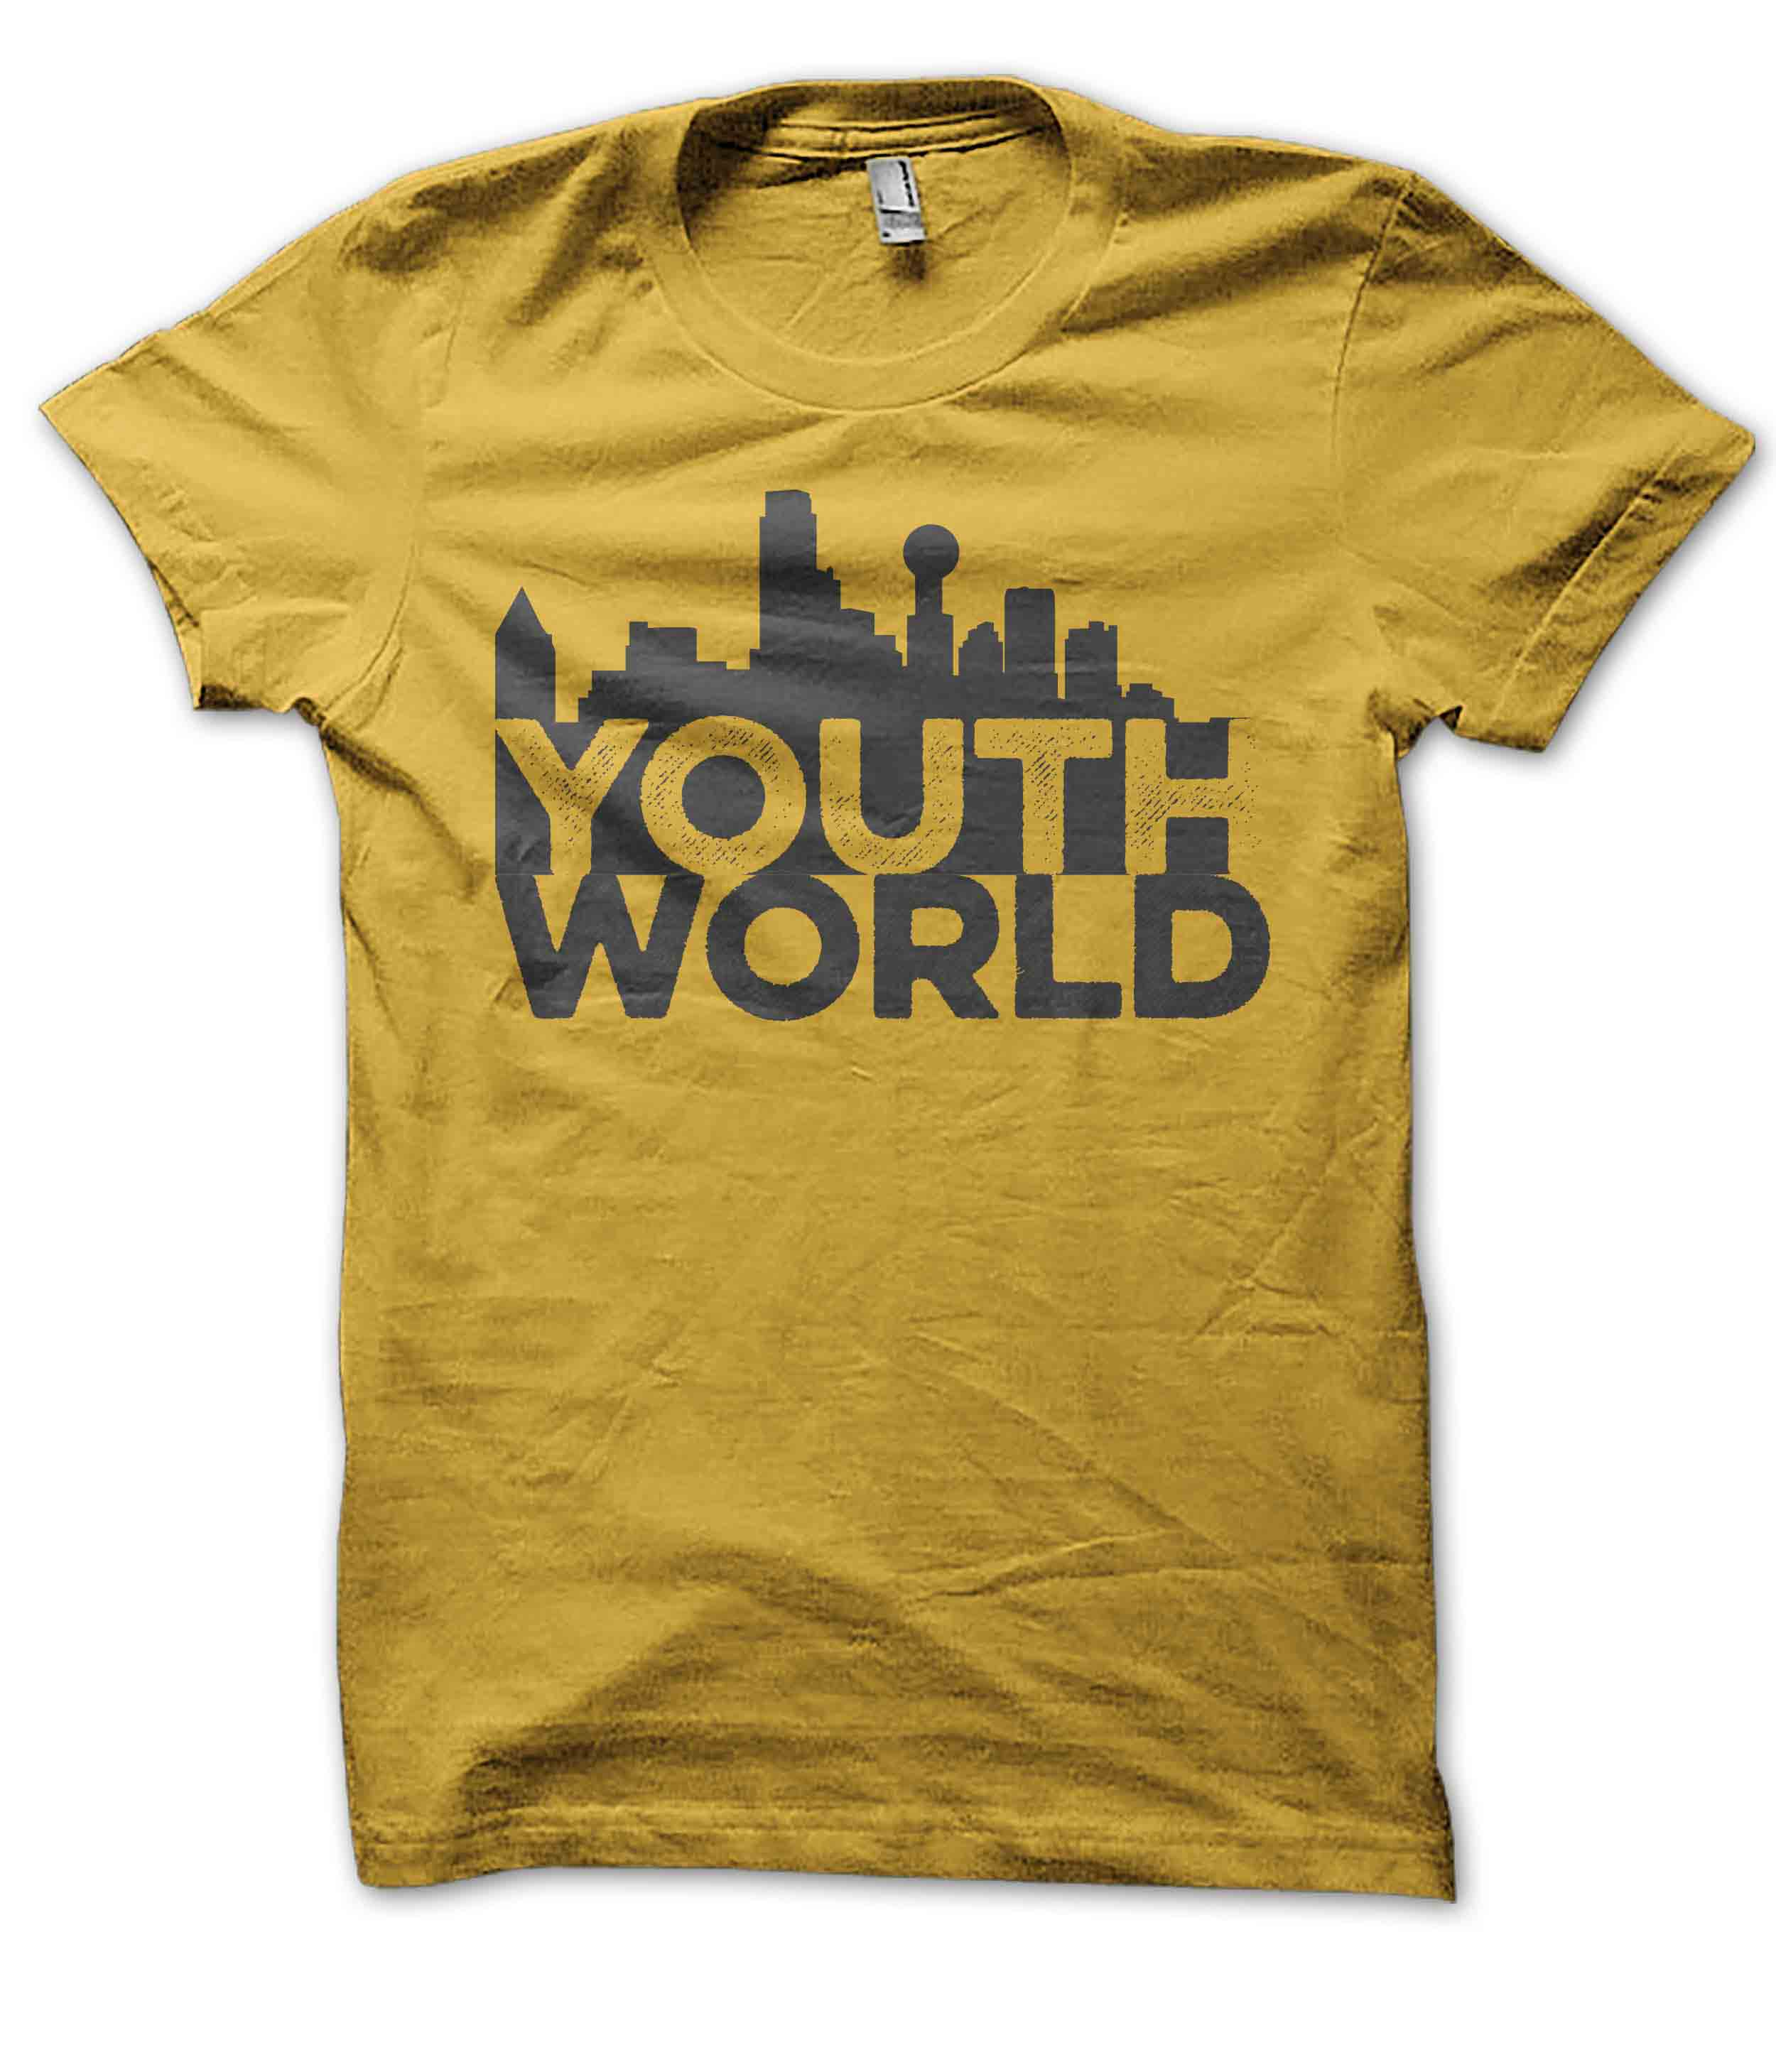 YouthWorldShirt_4a.jpg